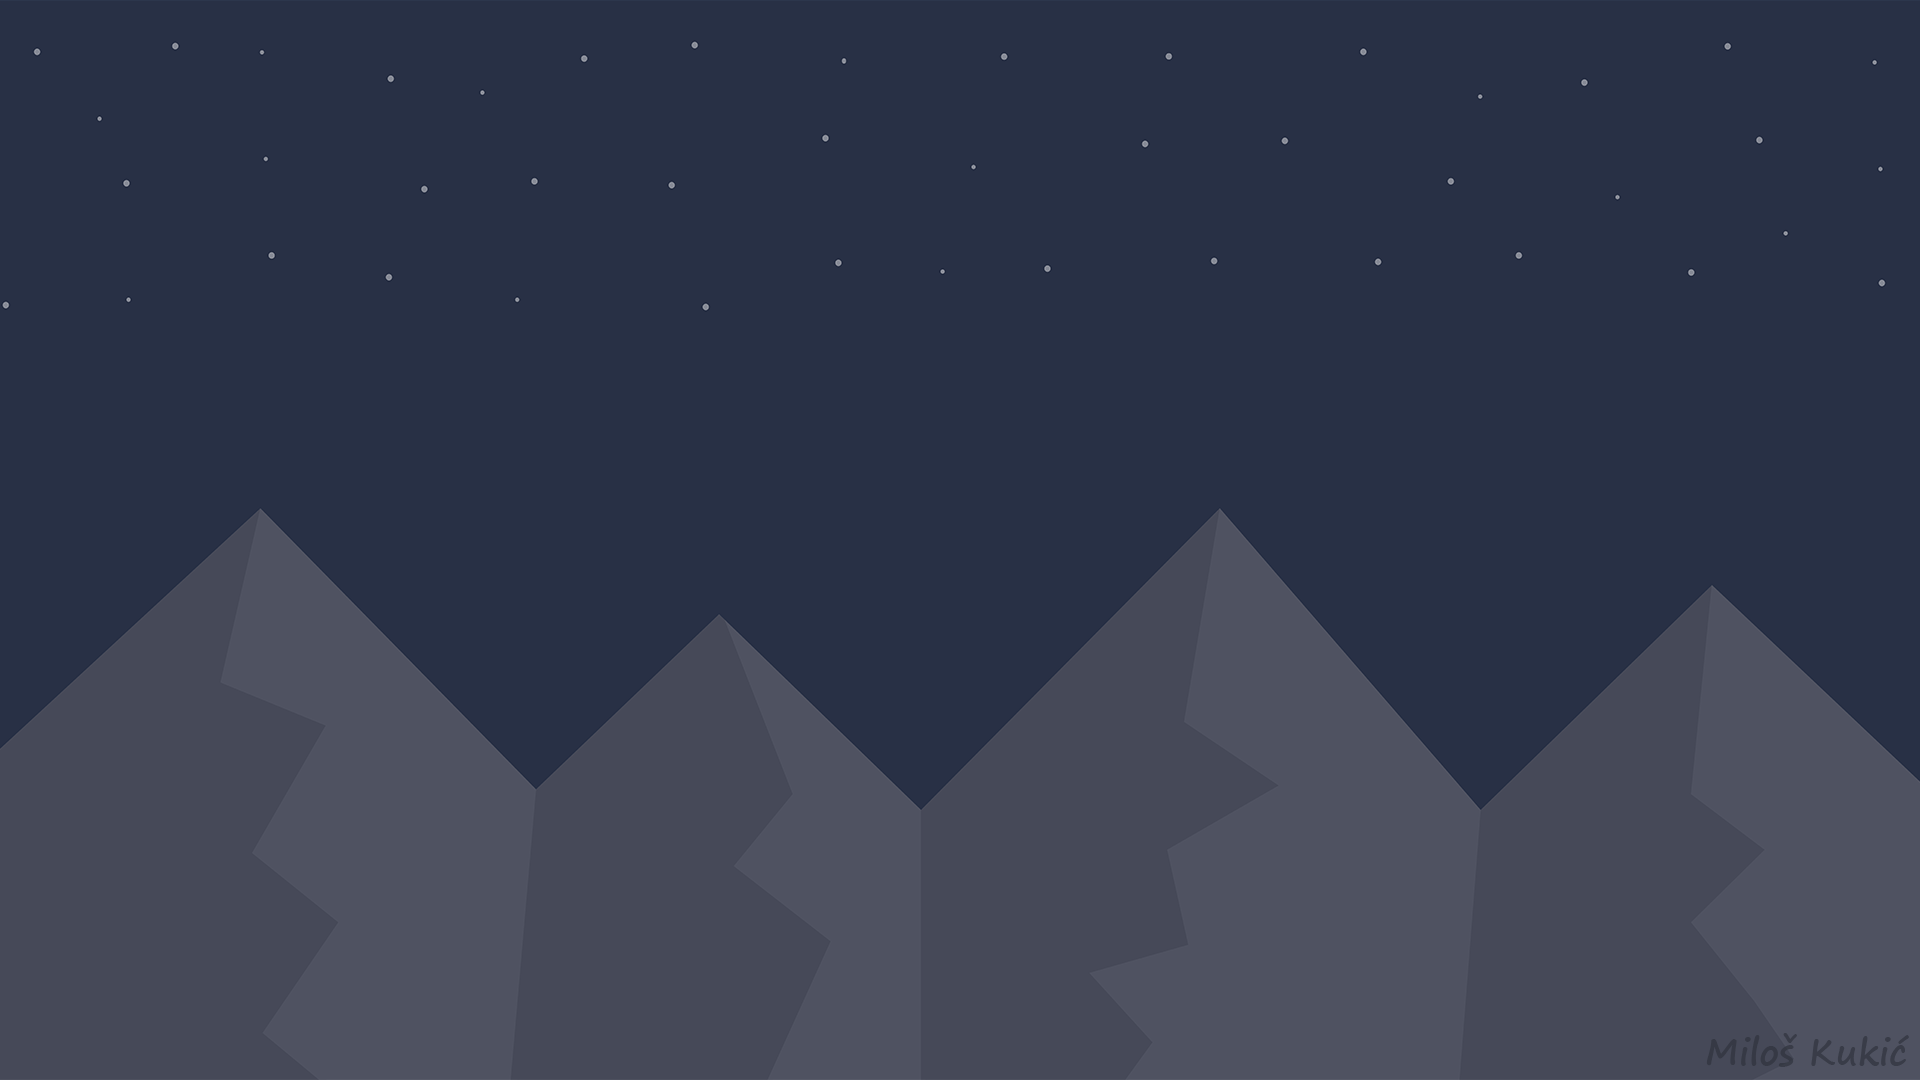 Must see Wallpaper Mountain Minimalistic - night_mountains____wallpaper__4k_or_full_hd__by_miloskukic-d9a3mii  Gallery_245570.png